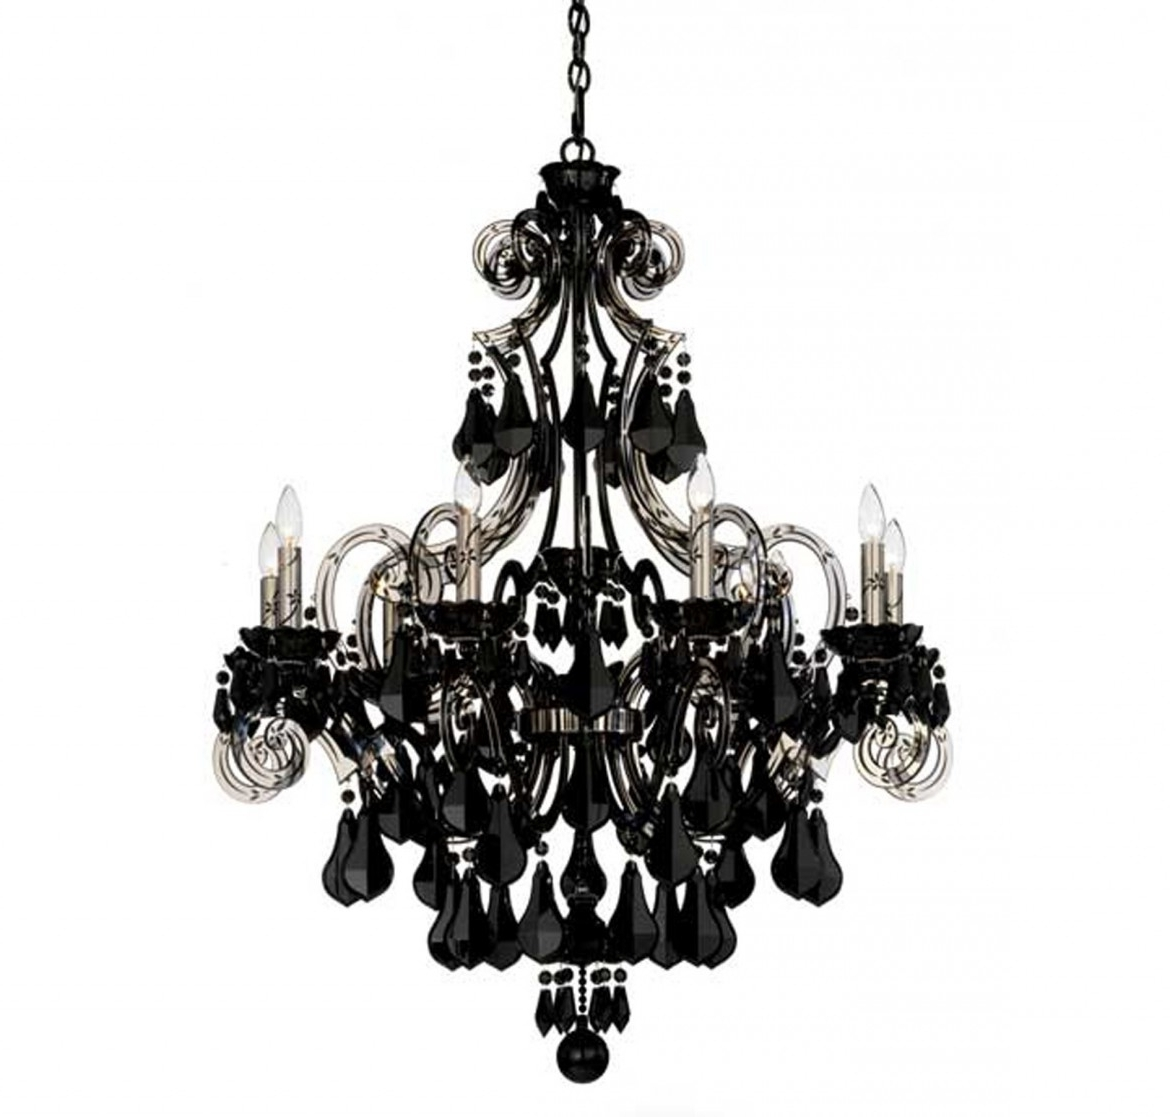 Black Chandeliers For And Chandelier Bedroom Modern Crystal Home Pertaining To 2018 Modern Black Chandelier (View 6 of 20)